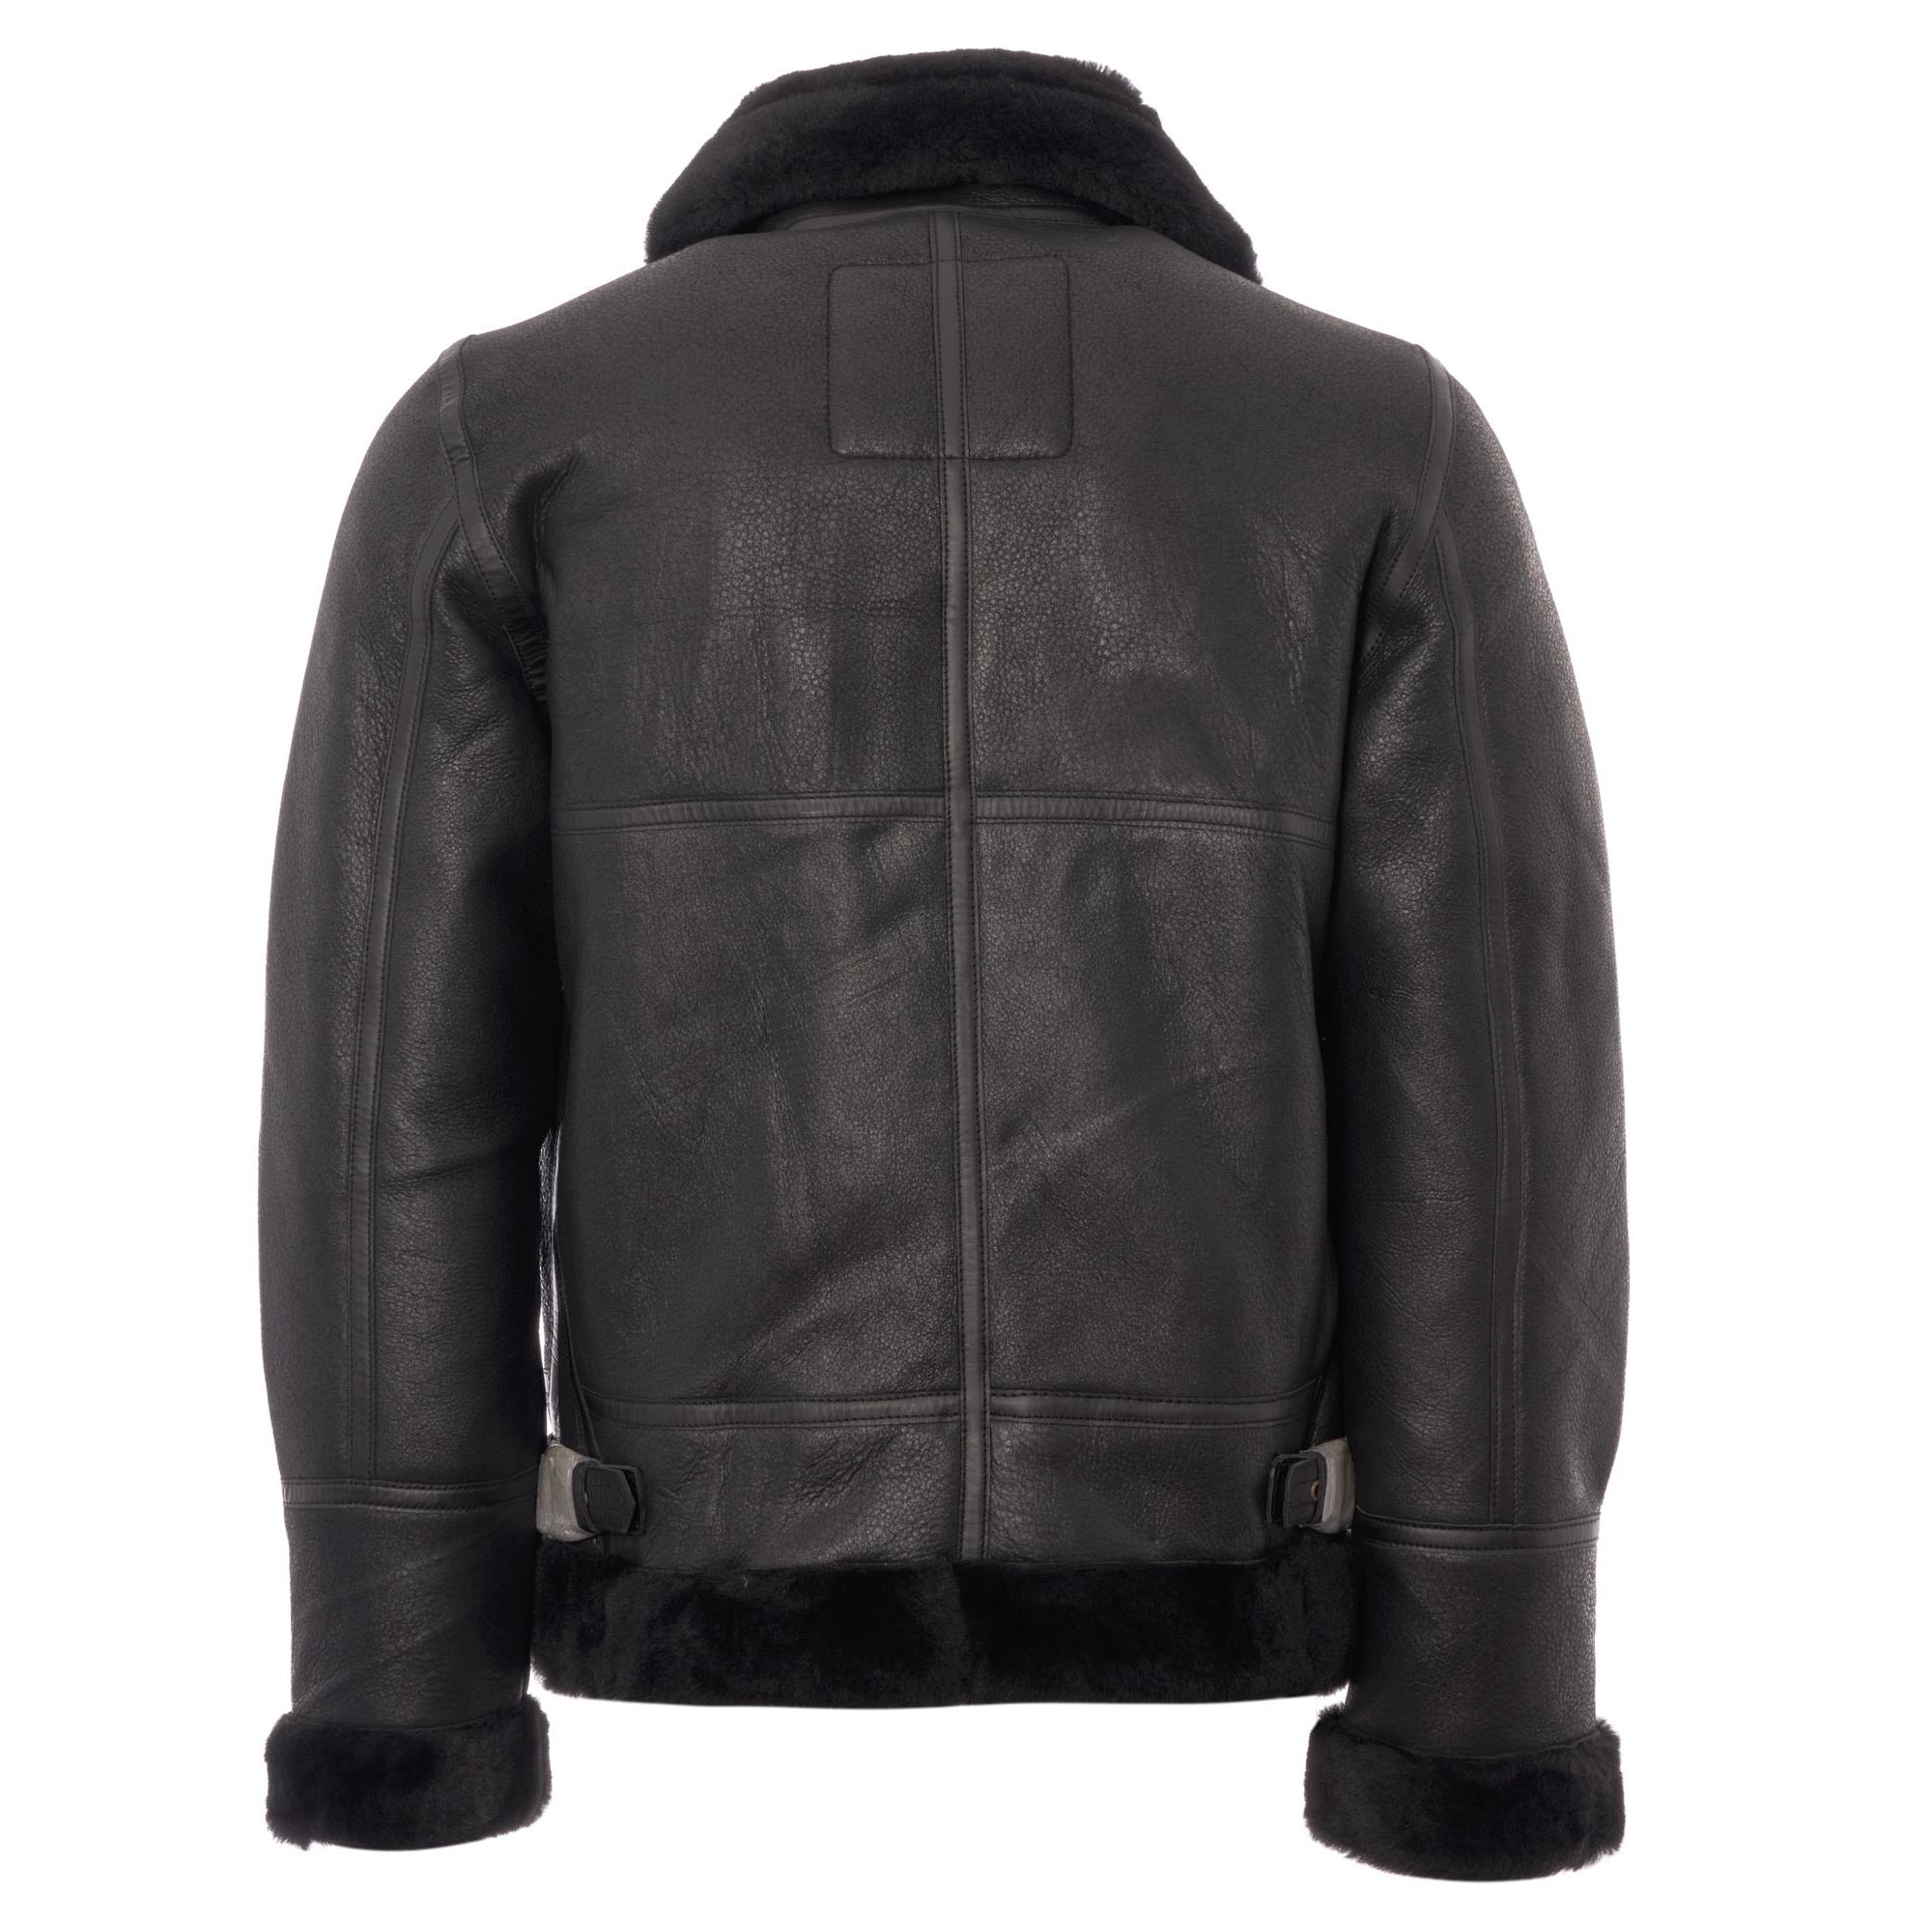 46ca3d163 Men's Lc1259 Bombardier Leather Flying Jacket - Black